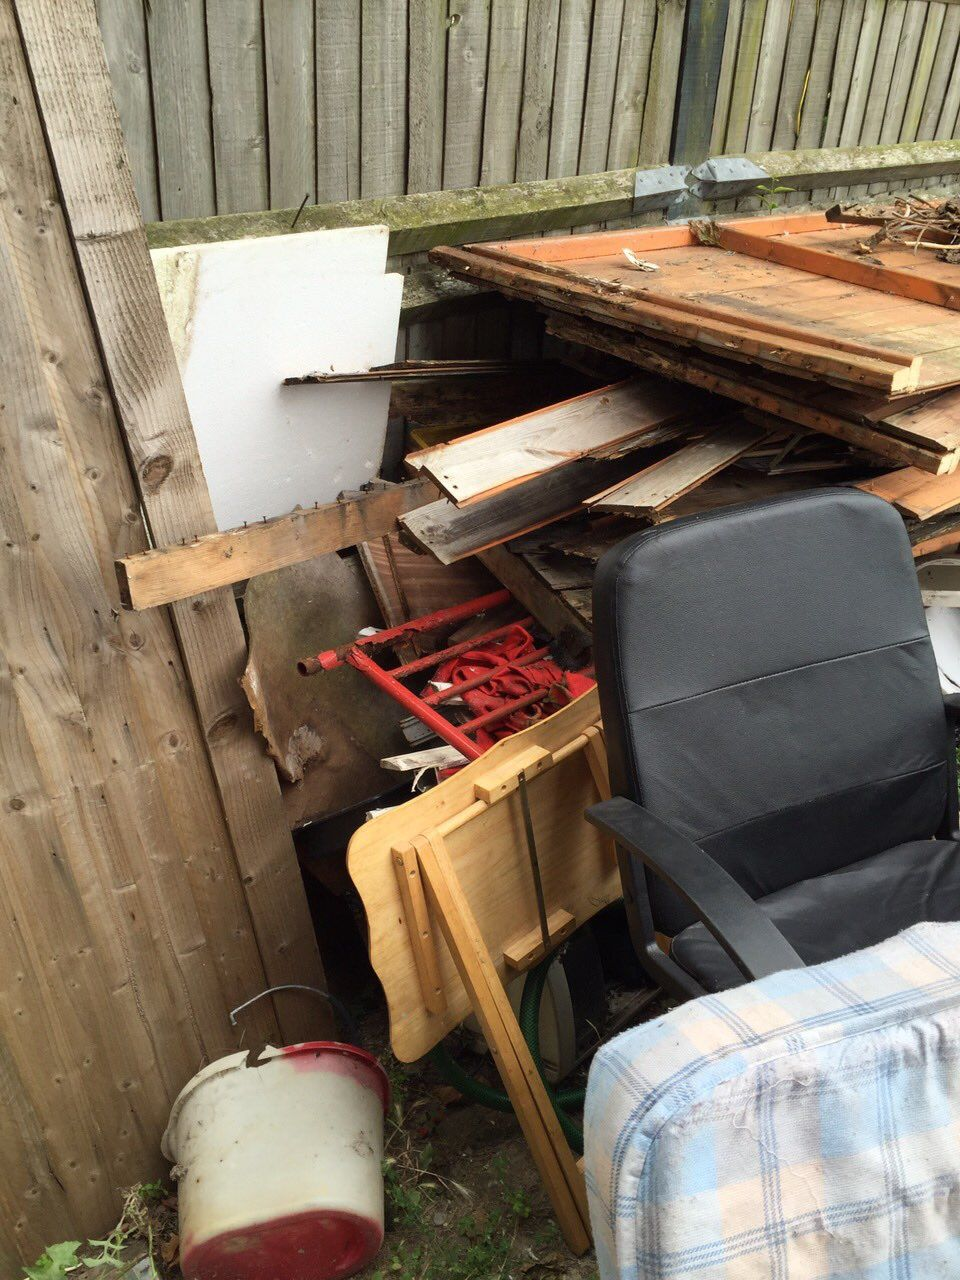 HA3 junk removal companies Harrow Weald